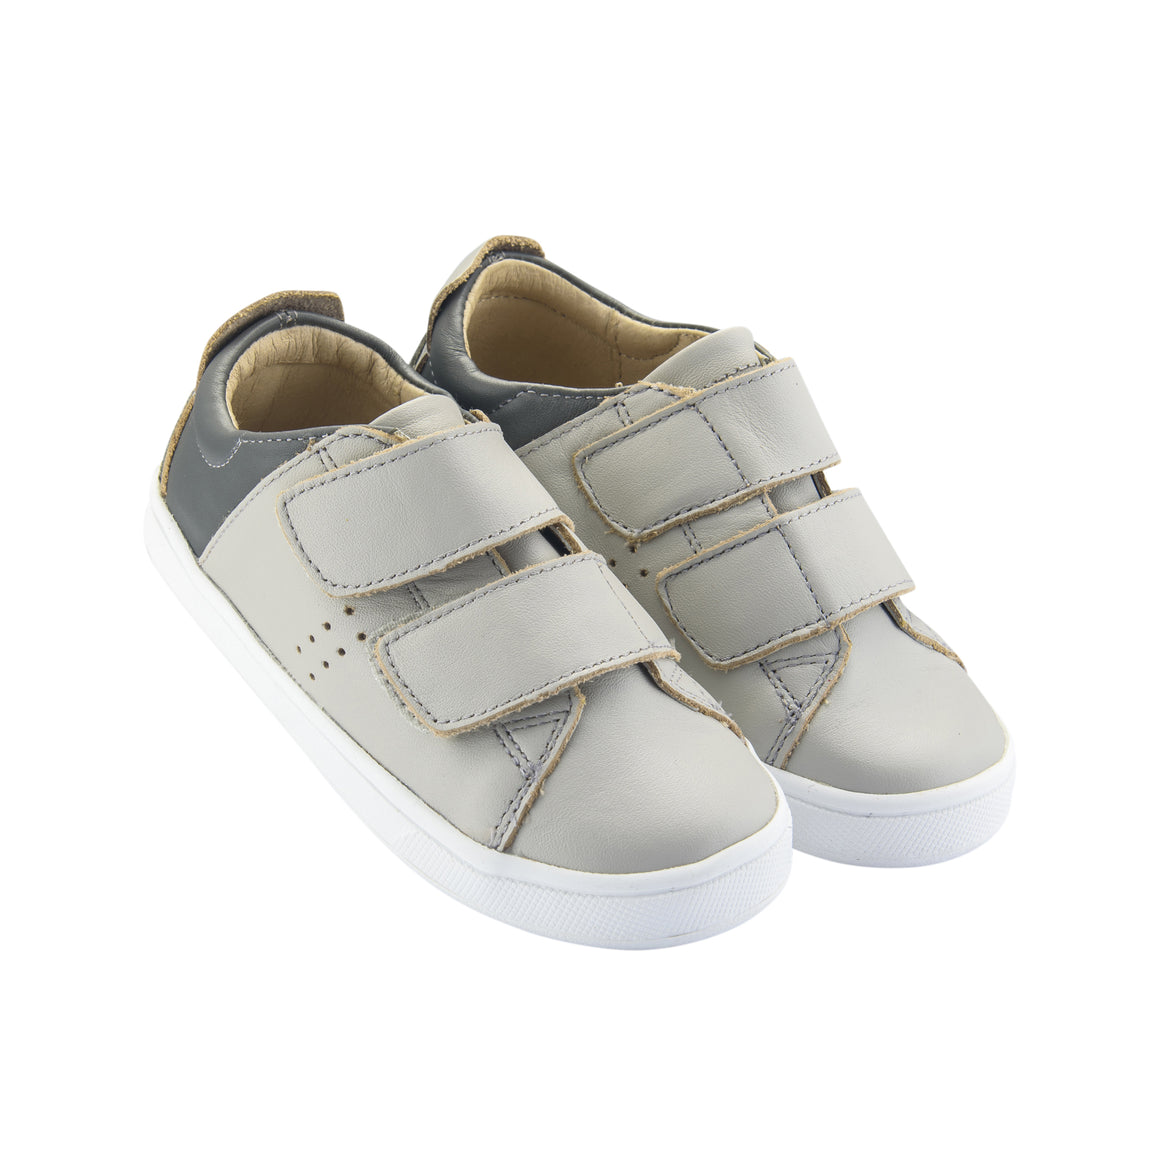 Old Soles | Toko (Toddler/Youth) Leather Shoes Gris / Grey (NEW)